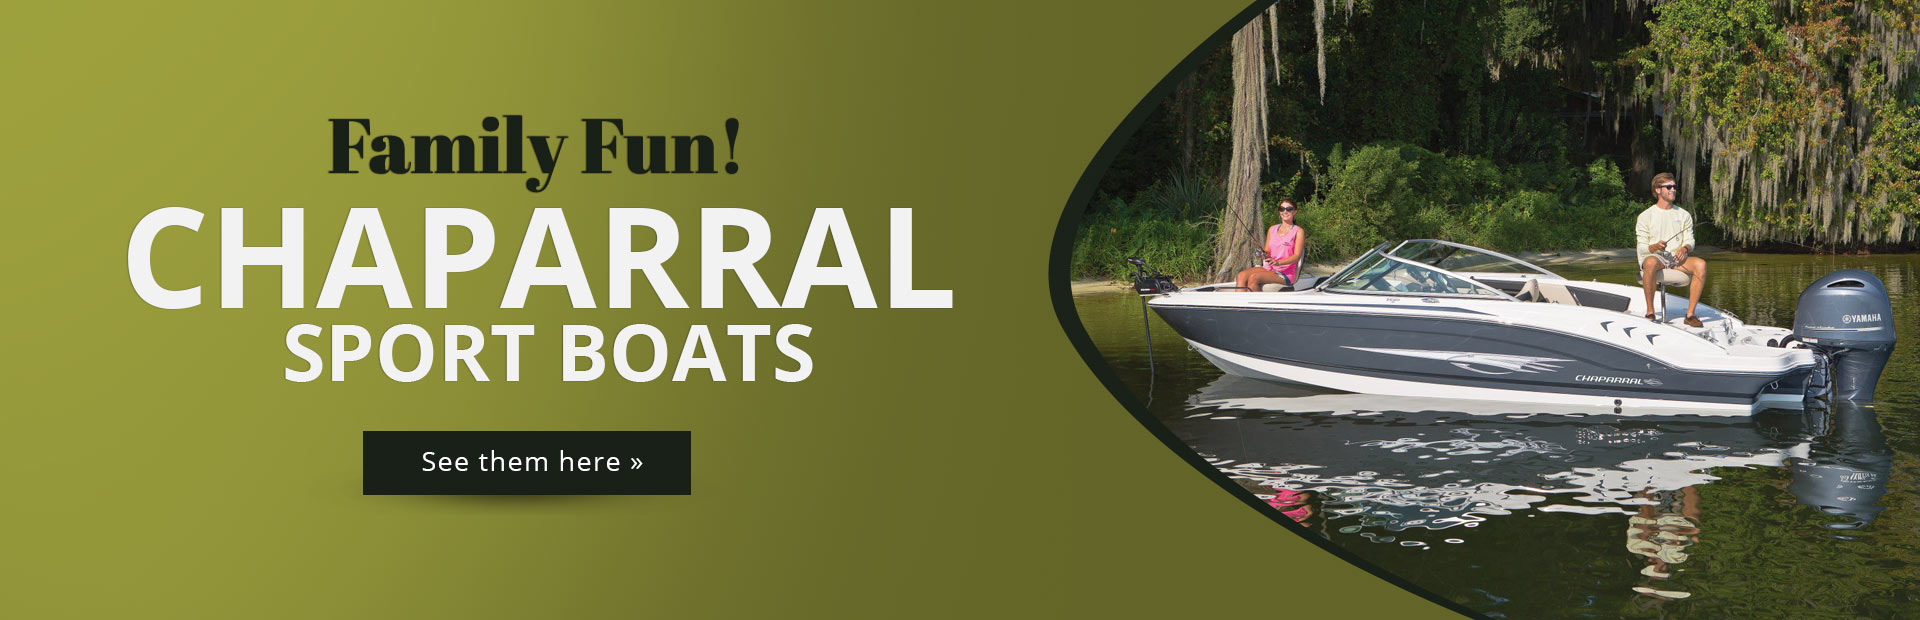 Chaparral Sport Boats: Click here to view the models.